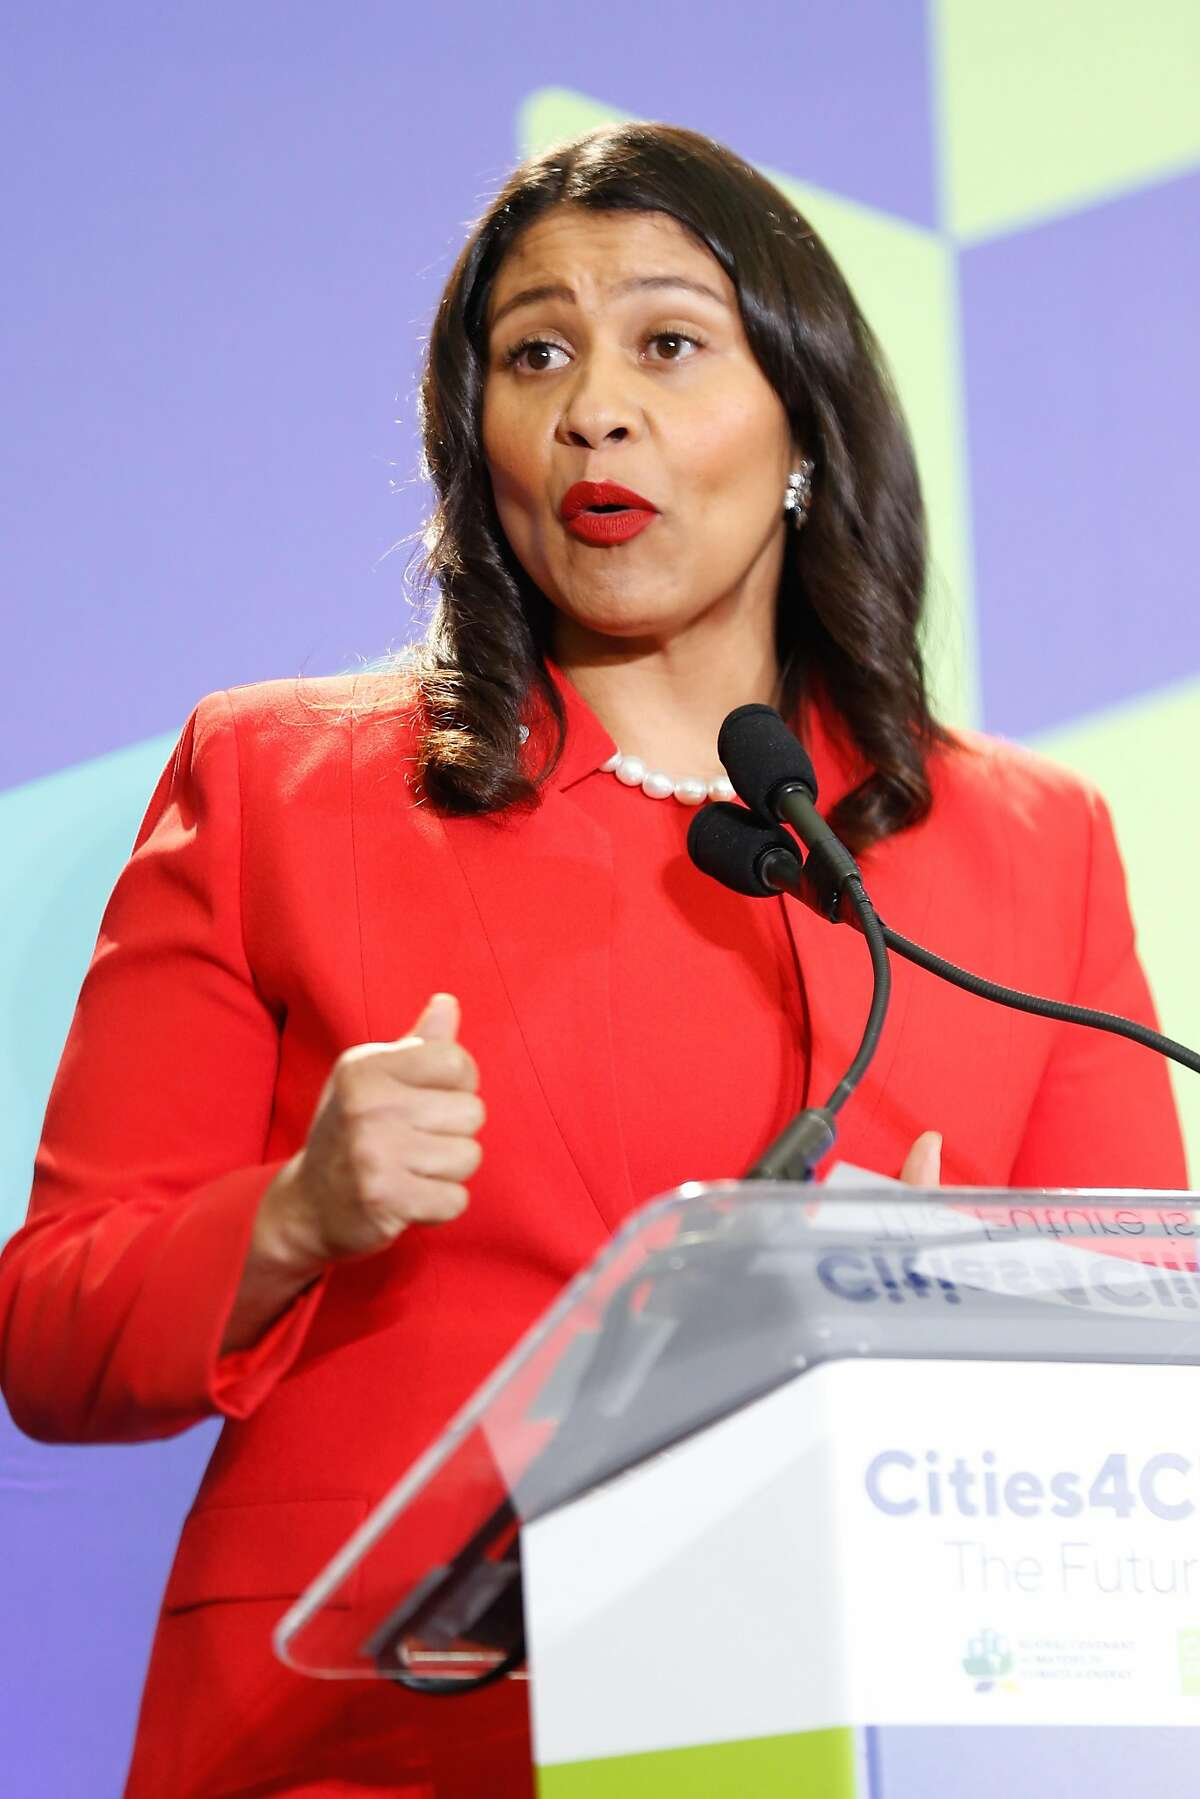 San Francisco Mayor London Breed and Supervisor Rafael Mandelman told lawmakers in June that current conservatorship laws often block counties from helping people suffering from both mental illness and substance abuse if they refuse assistance.